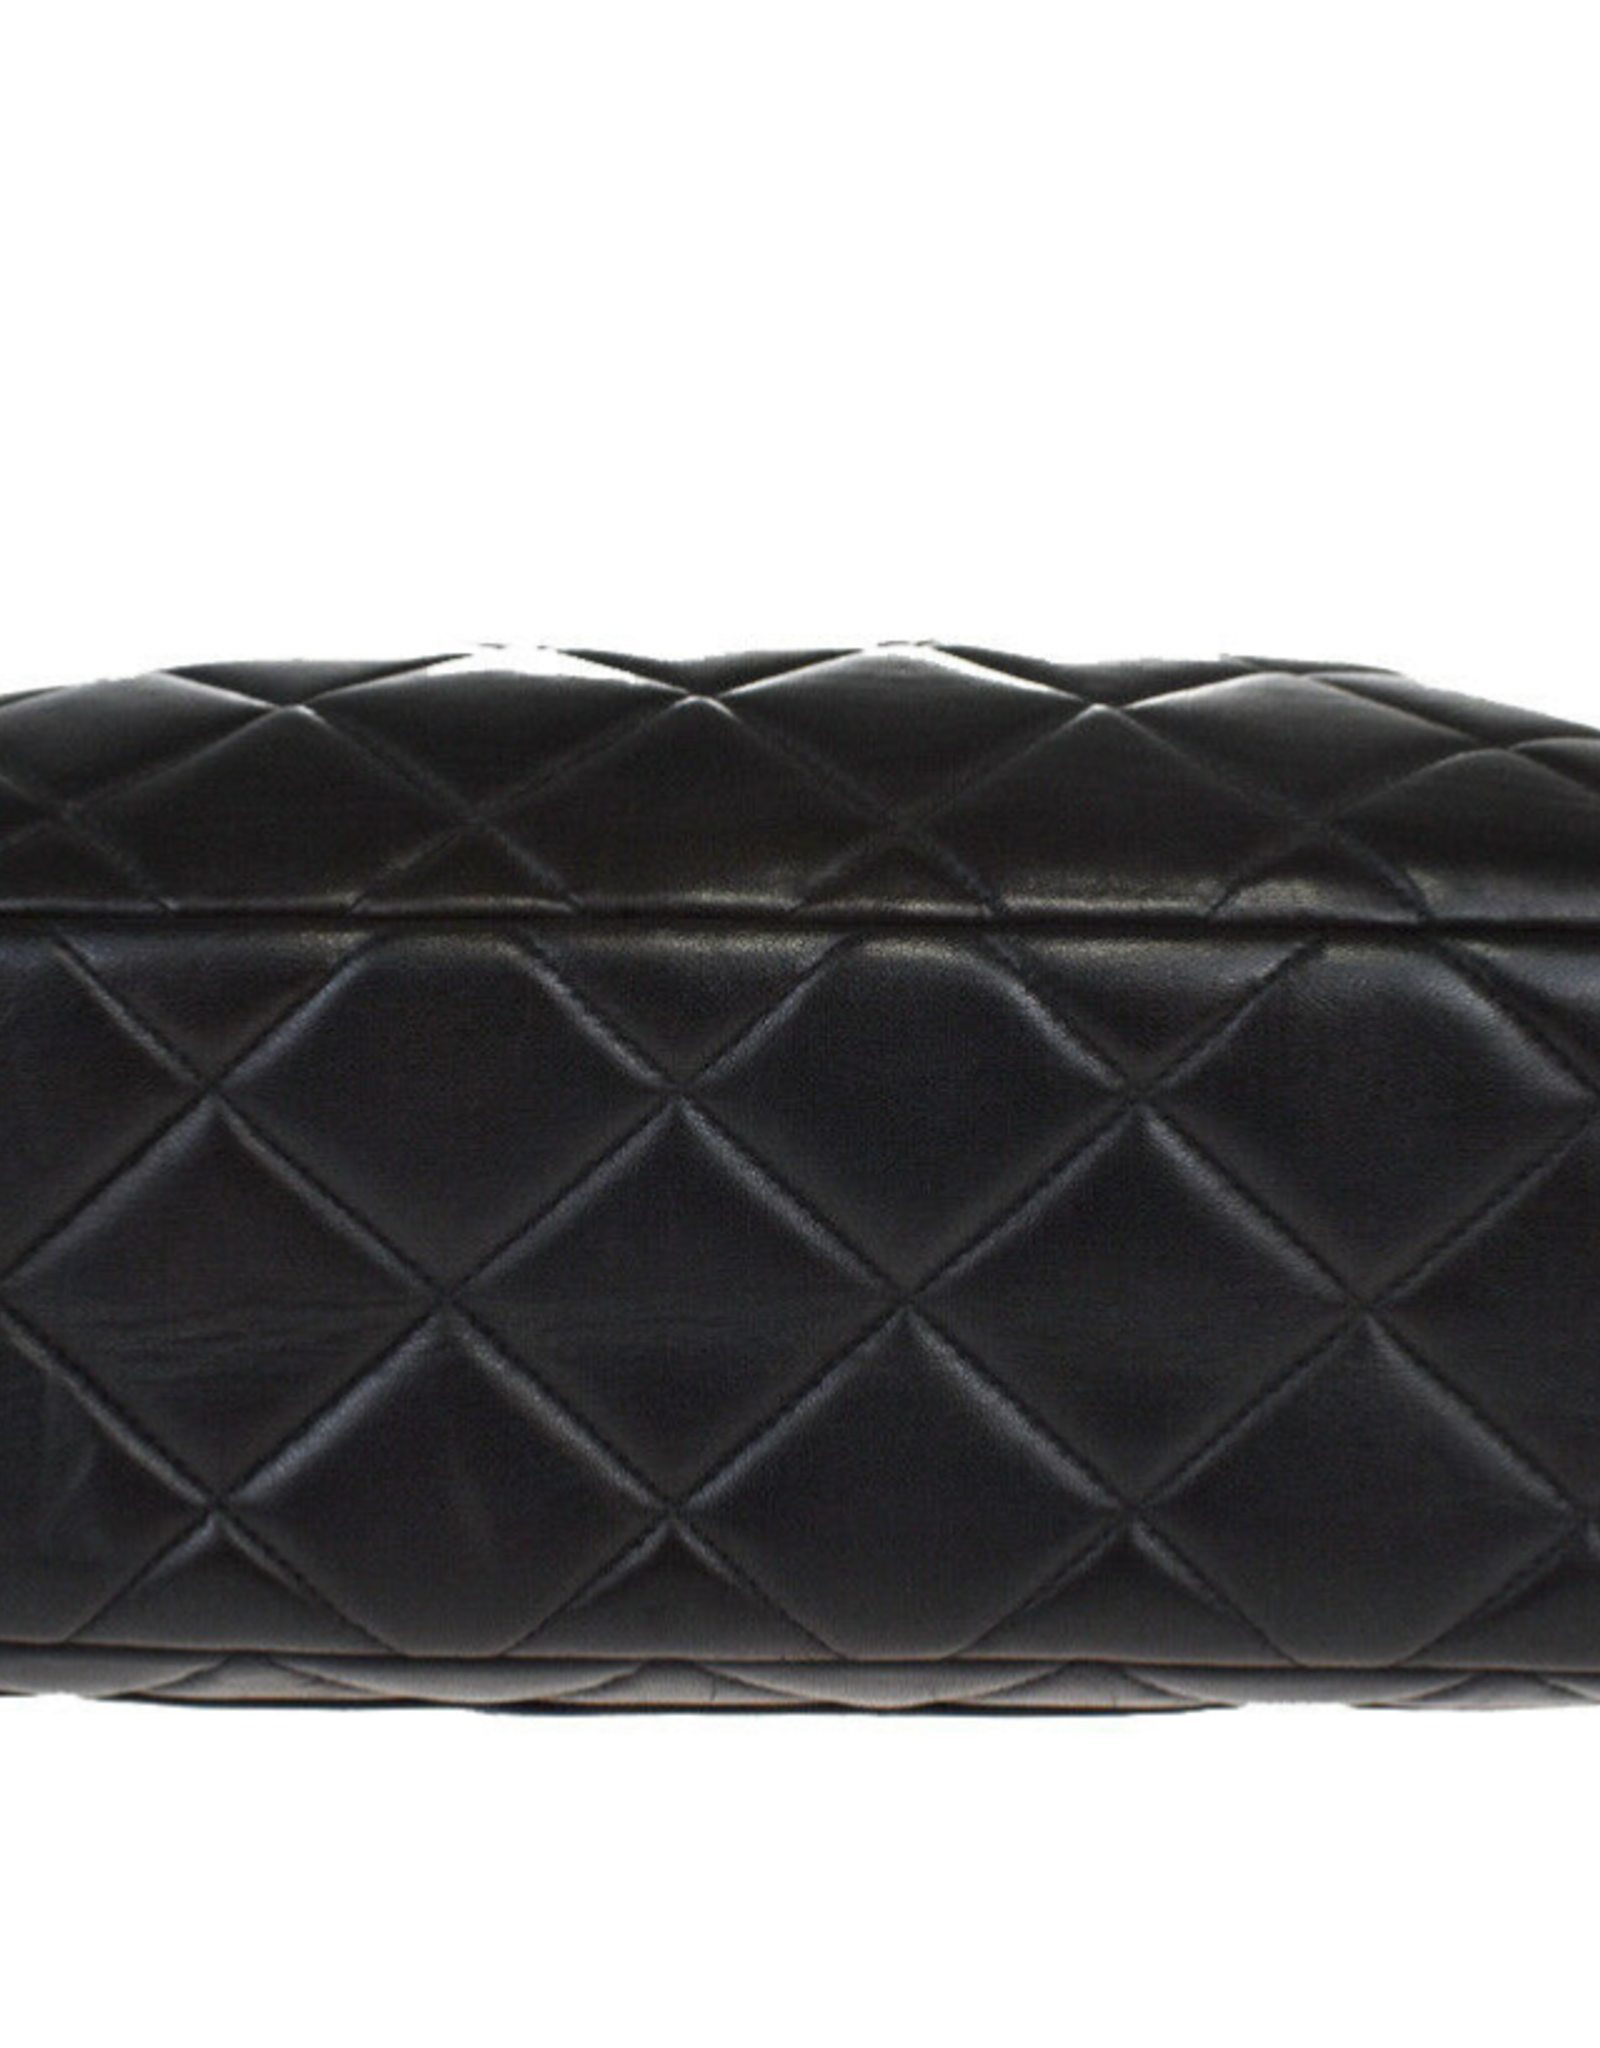 Wyld Blue Vintage Chanel Large Quilted Leather Shoulder Bag